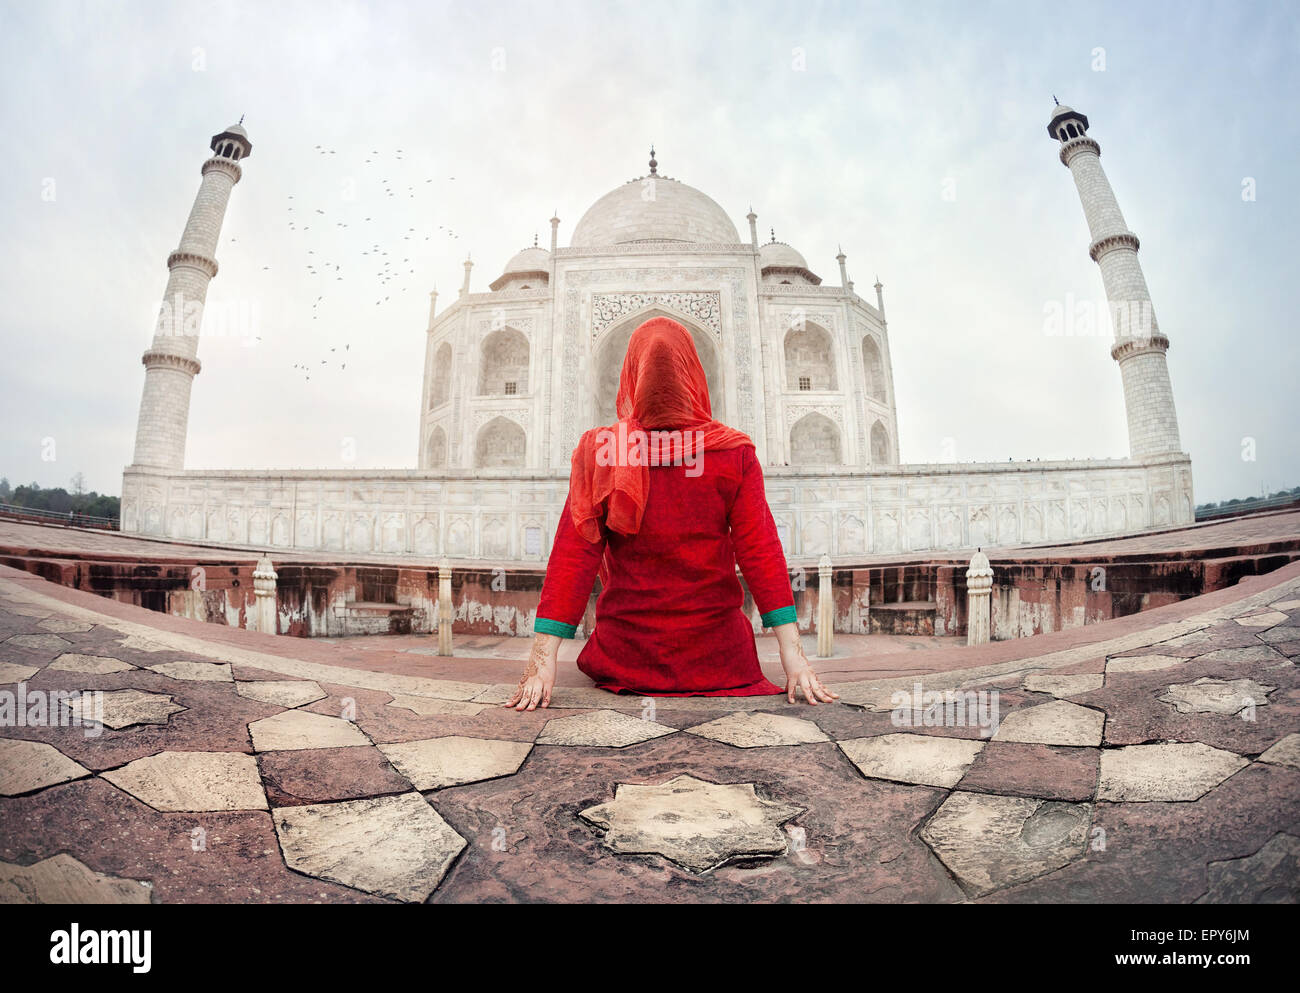 Woman in red costume sitting on the floor and looking at Taj Mahal in Agra, Uttar Pradesh, India - Stock Image